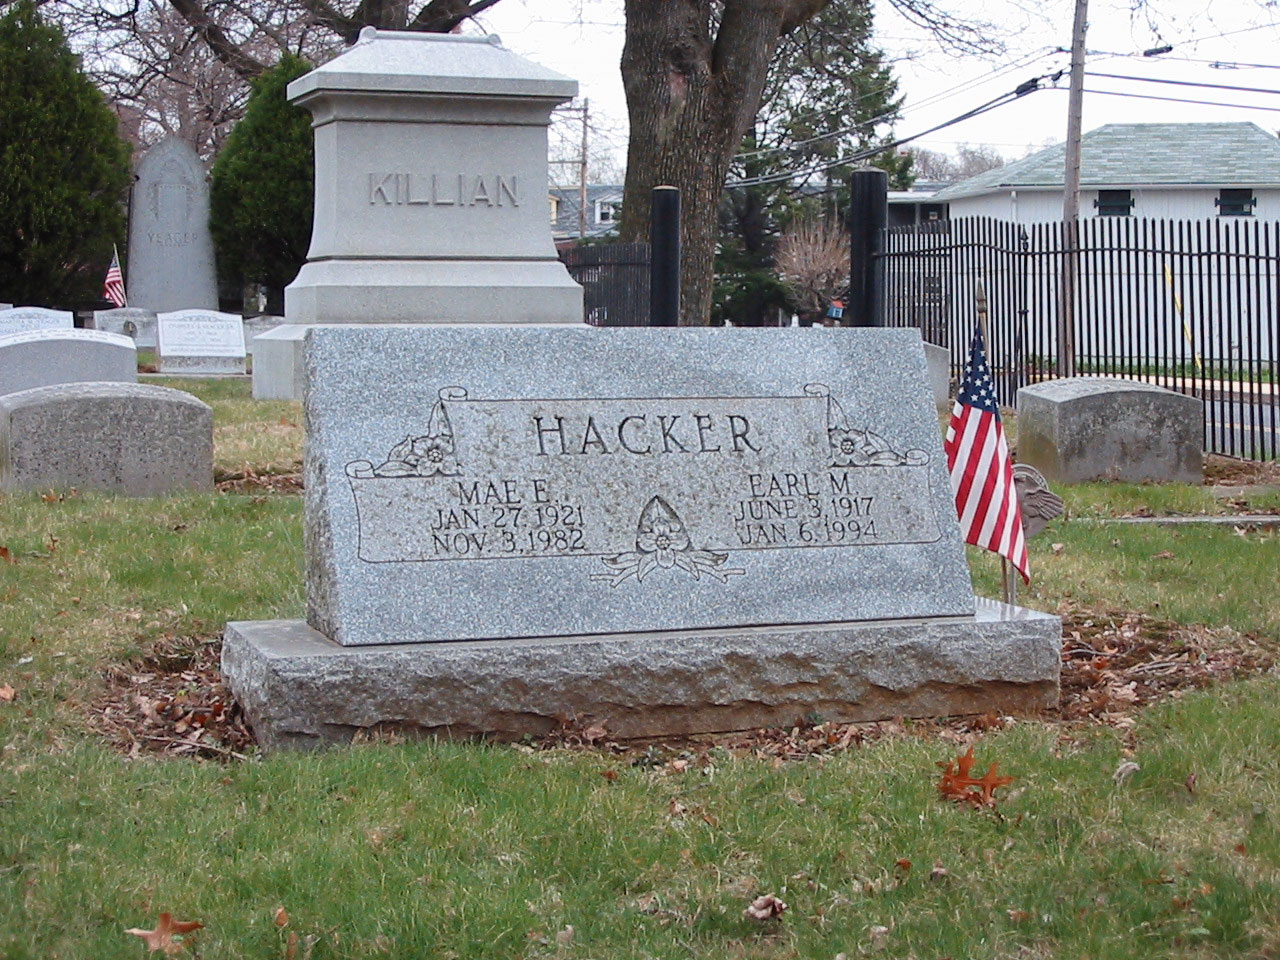 Gravestone of Earl M. and Mae E. Hacker